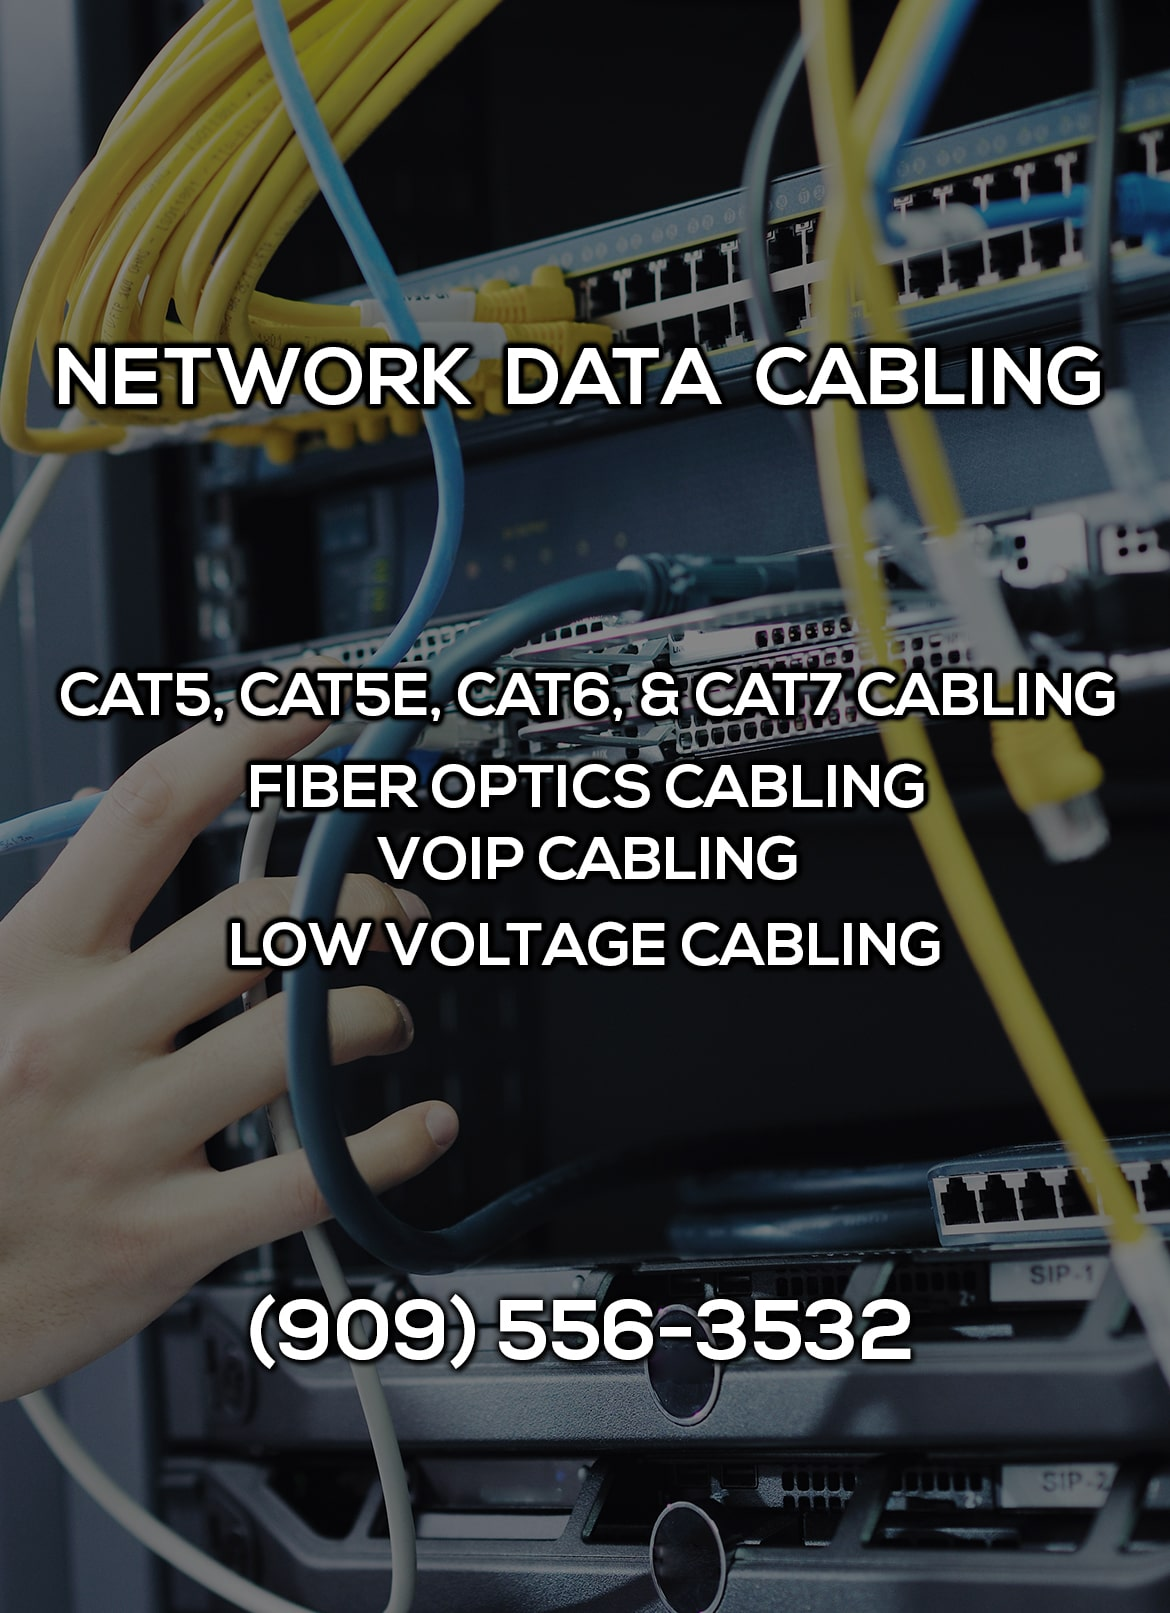 Network Data Cabling in Colton CA